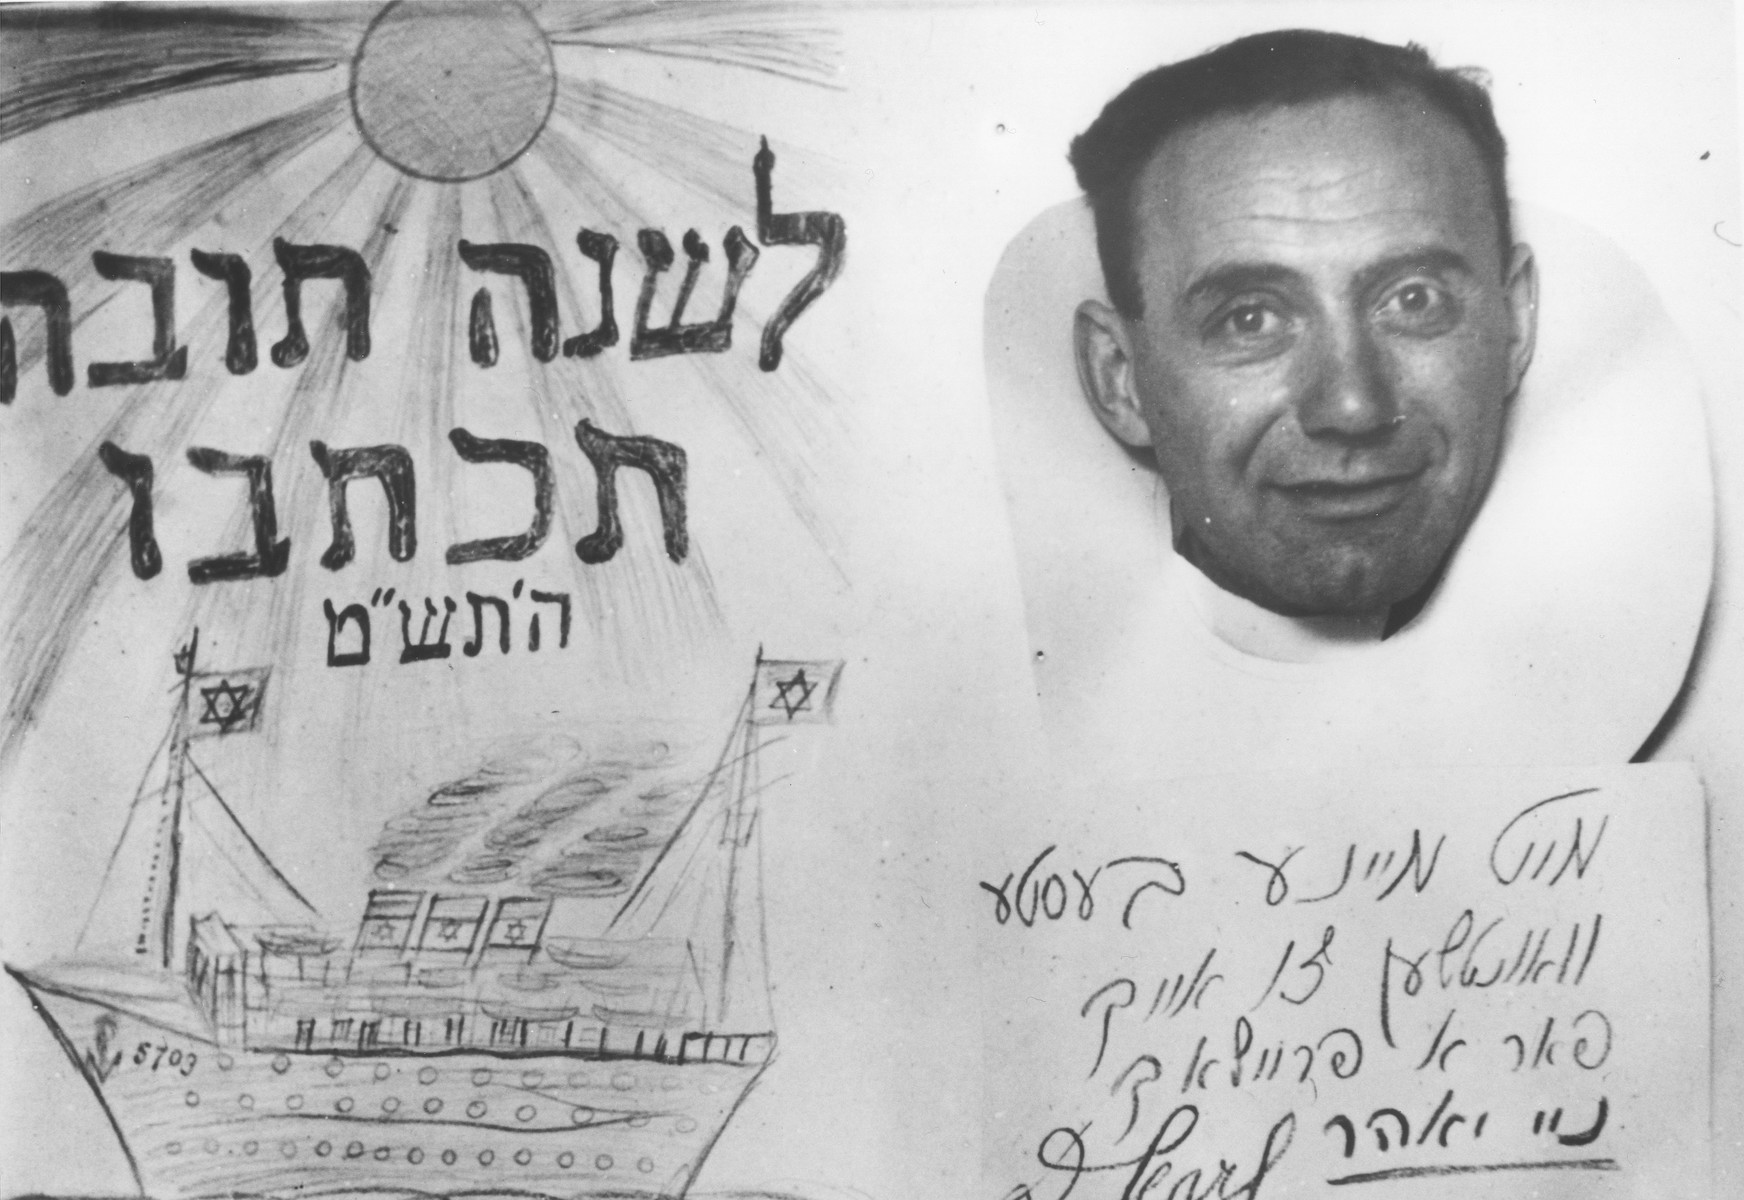 """Personalized Jewish New Years card featuring a drawing of a Jewish immigrant ship, from D. Pearl, a former pilot who served as the UNRRA director of the Hessisch-Lichtenau displaced persons camp system.  The Hebrew text reads: """"May you be inscribed for a good year.""""  The Yiddish inscription reads: """"With my best wishes to you for a happy new year, D. Pearl."""""""